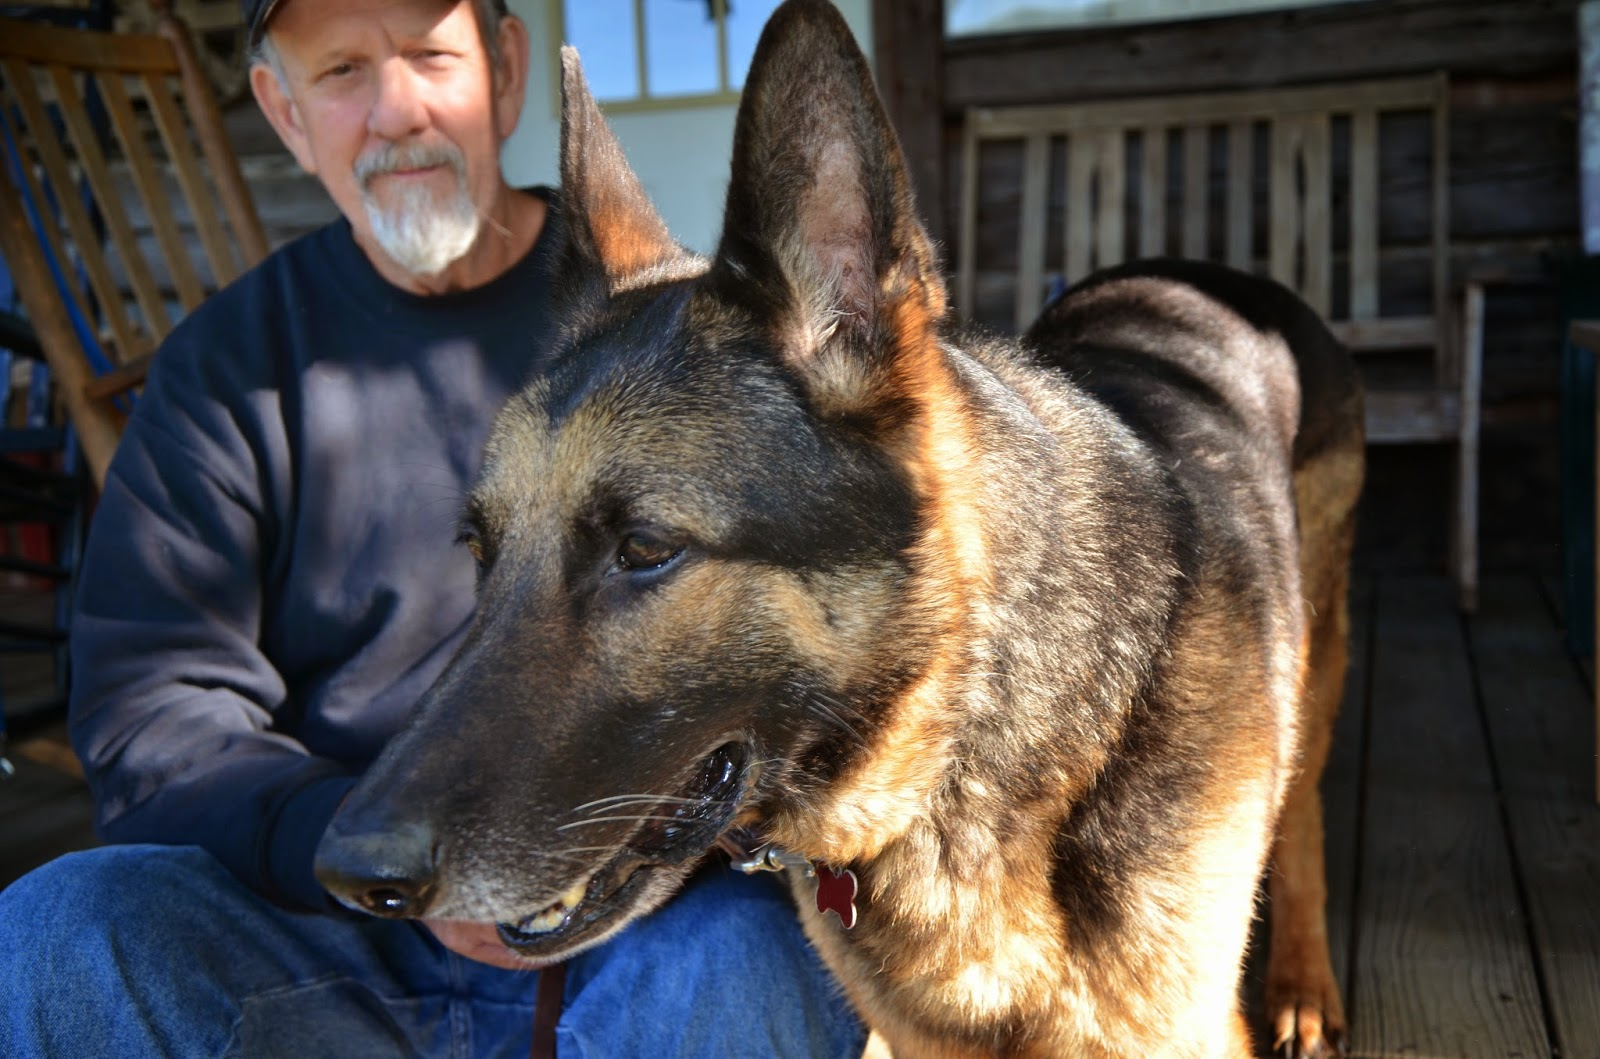 Vietnam Veteran and MWD handler Johnny Mayo with a military working dog